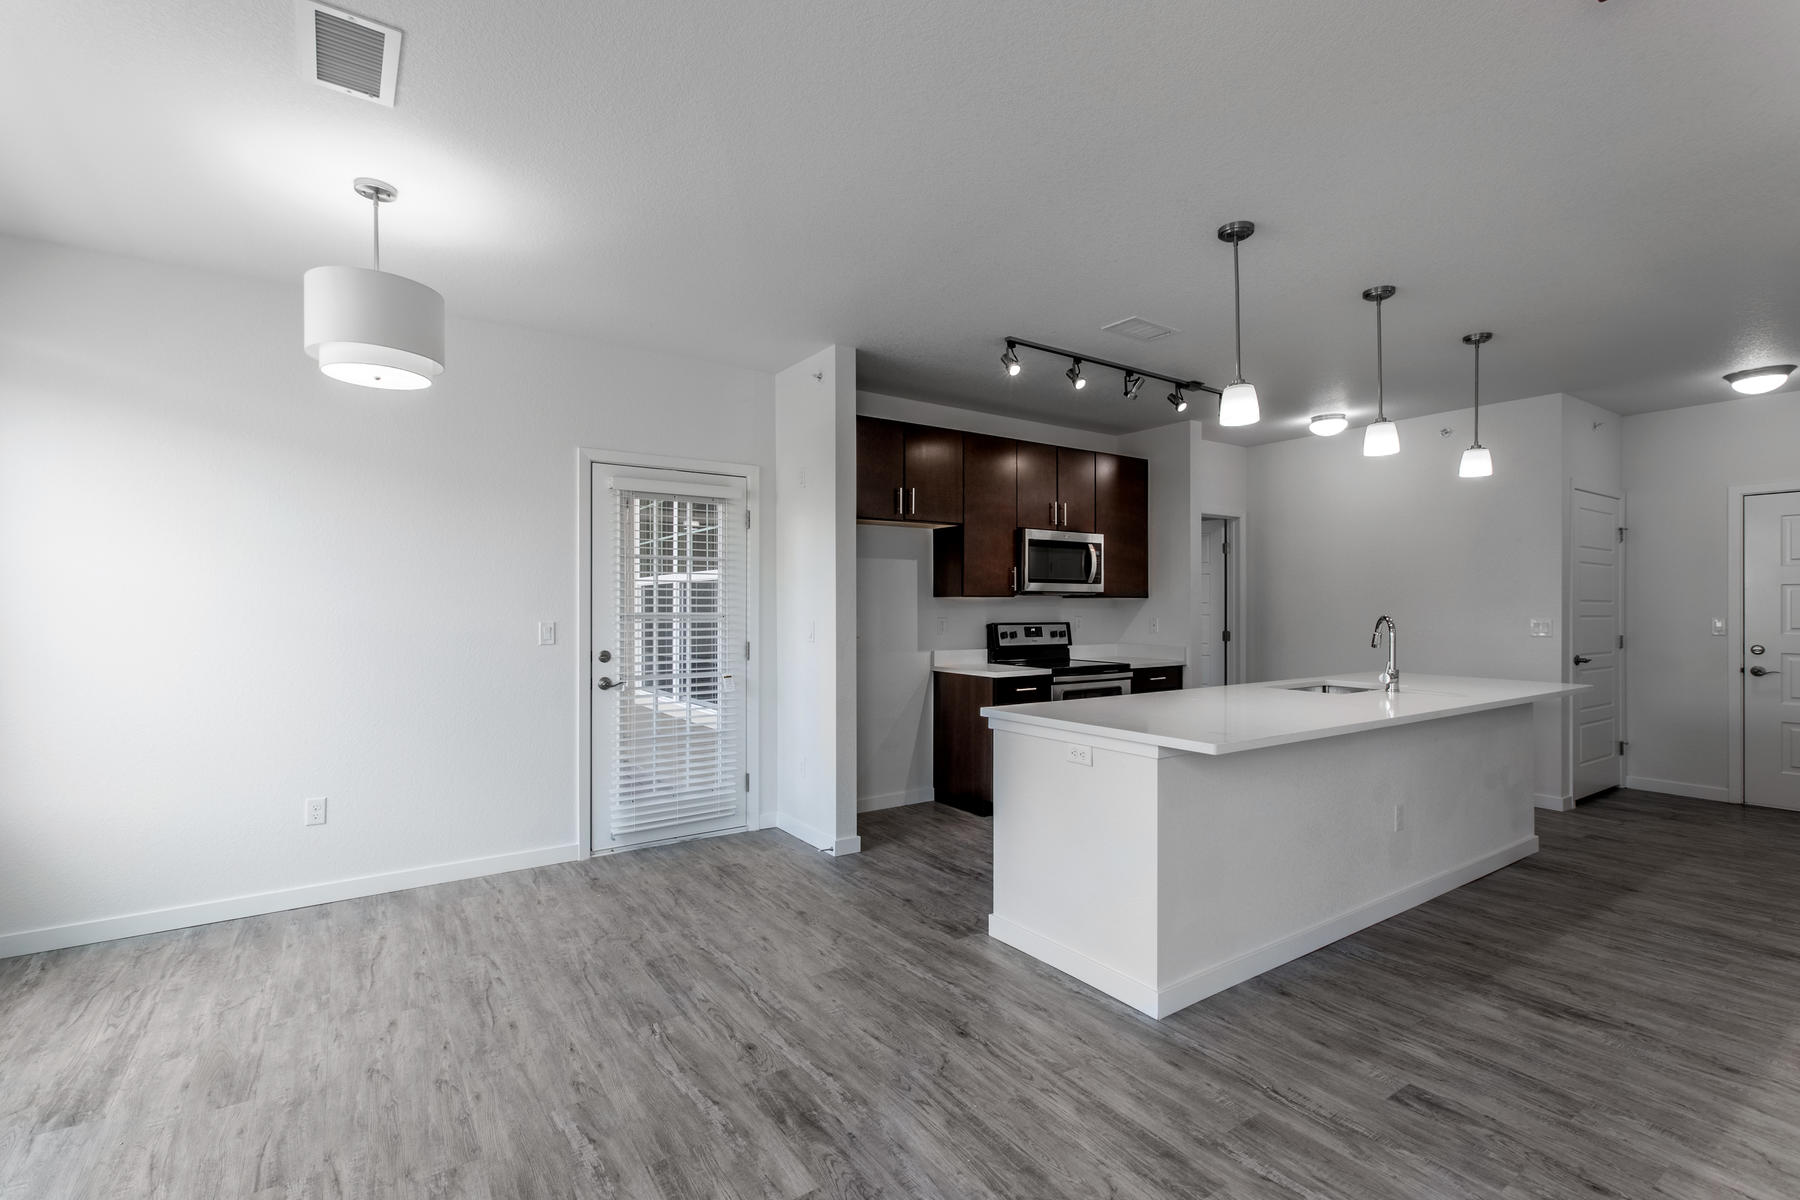 Additional photo for property listing at New construction Condos in an established community in Parker. 17353 Wilde Ln #208 D, Bldg 6 Parker, Colorado 80134 United States